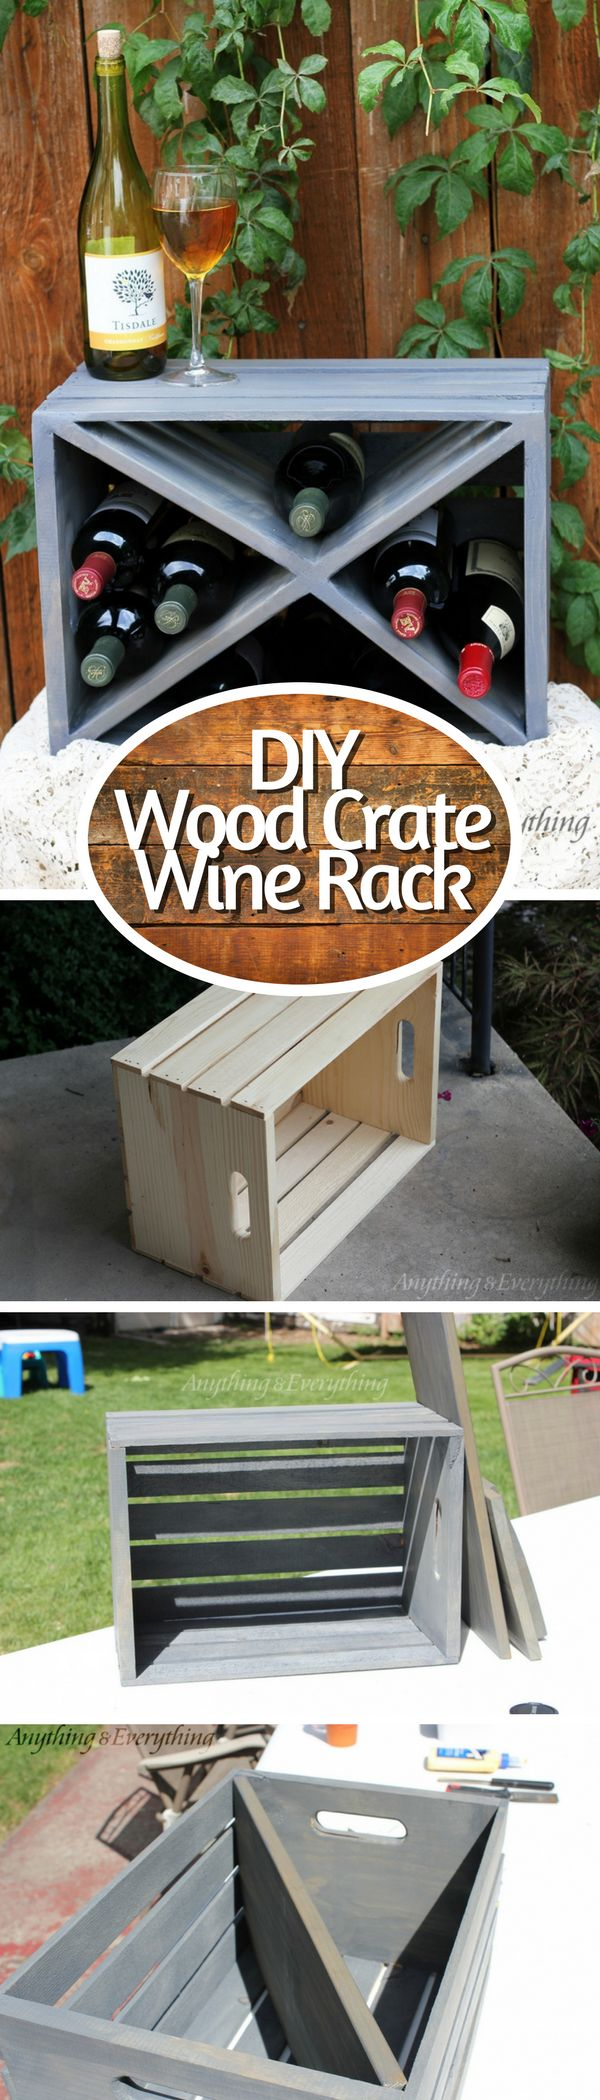 Check out how to make an easy DIY wine rack from a wood crate @istandarddesign